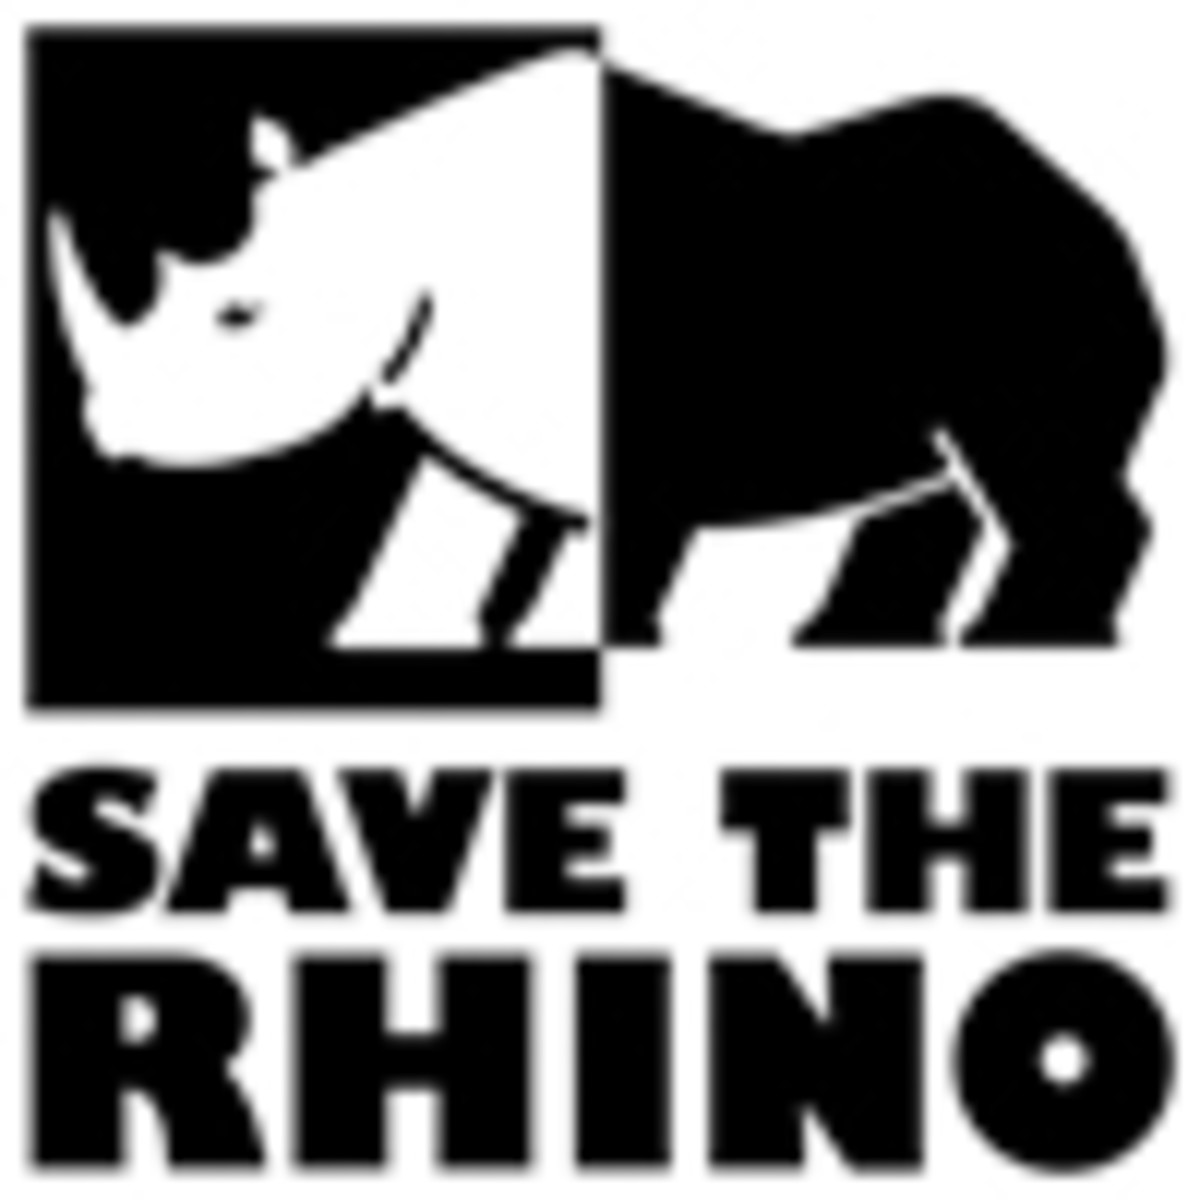 Image from http://www.savetherhino.org